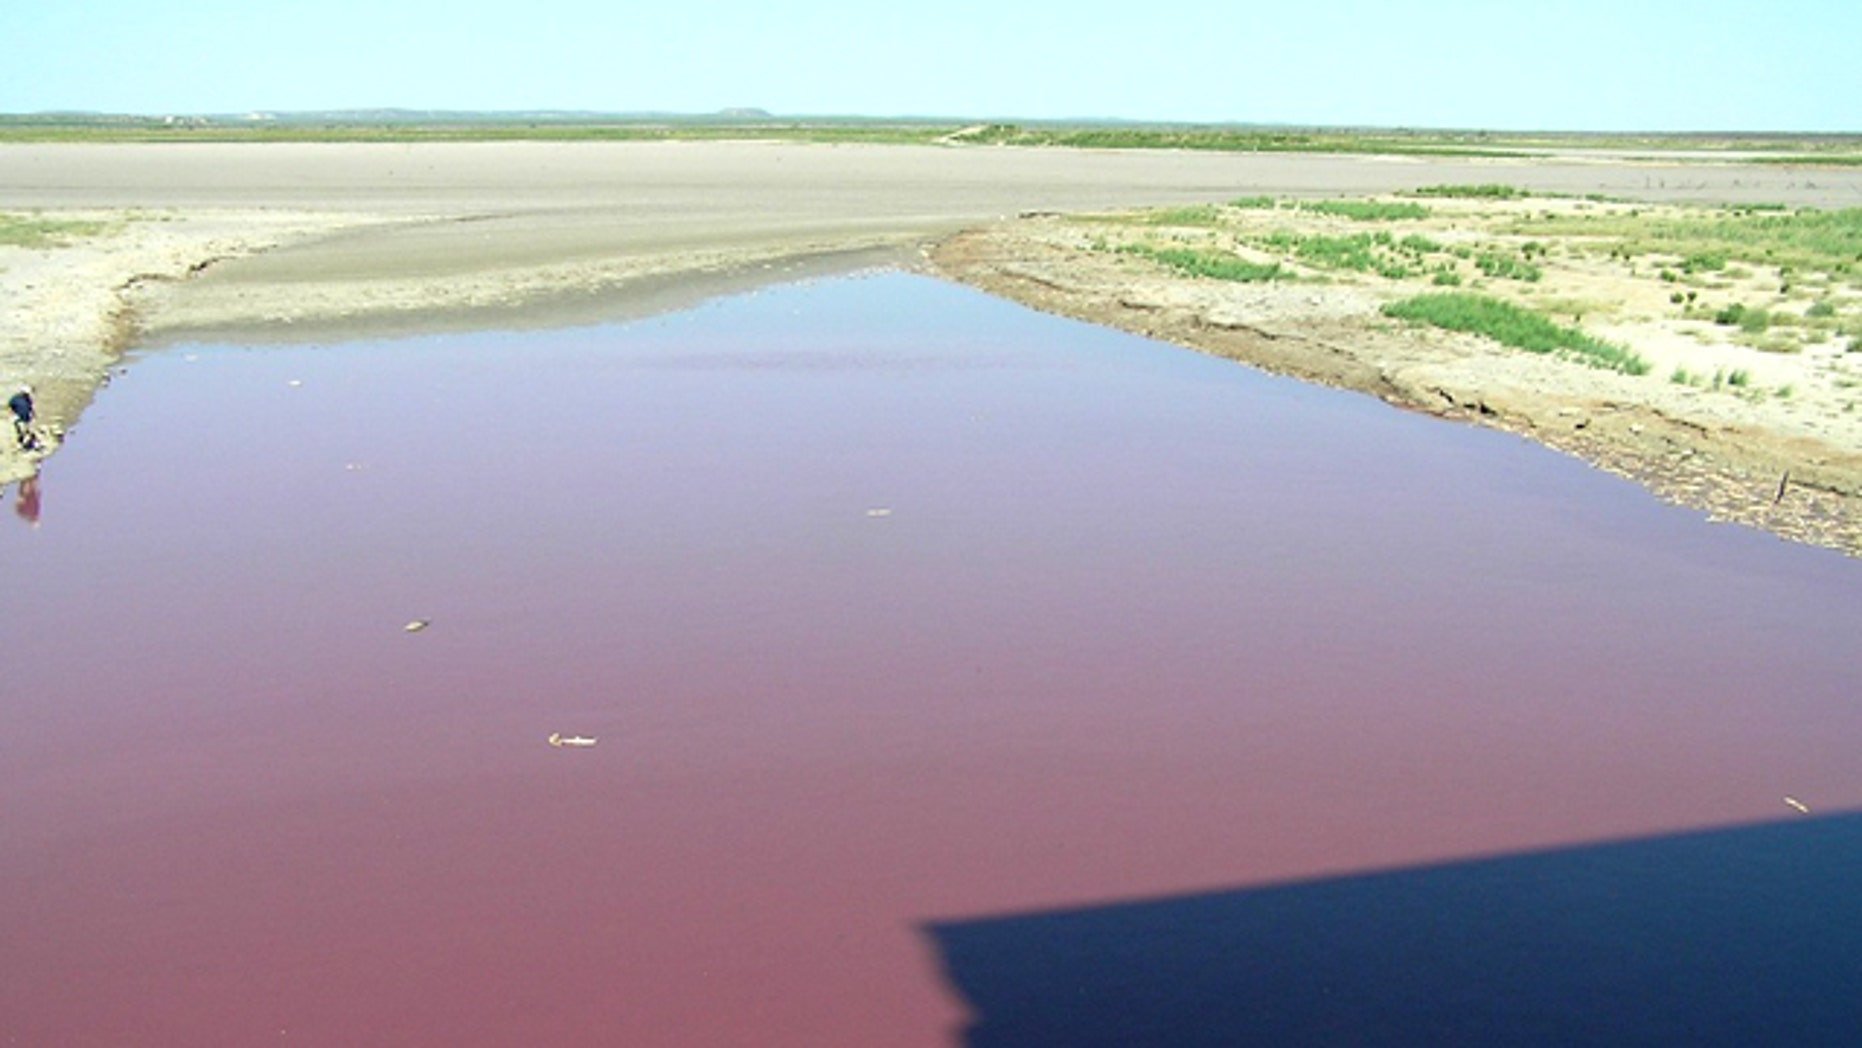 OC Fisher, a reservoir in West Texas, turned blood-red in recent weeks  what's left of it anyway. Due to unrelenting drought in Texas, the lake has almost entirely dried up, leaving thousands of dead fish behind. As of the last week in July, when this photo was taken, bacteria had turned the stagnant dregs of the lake red.